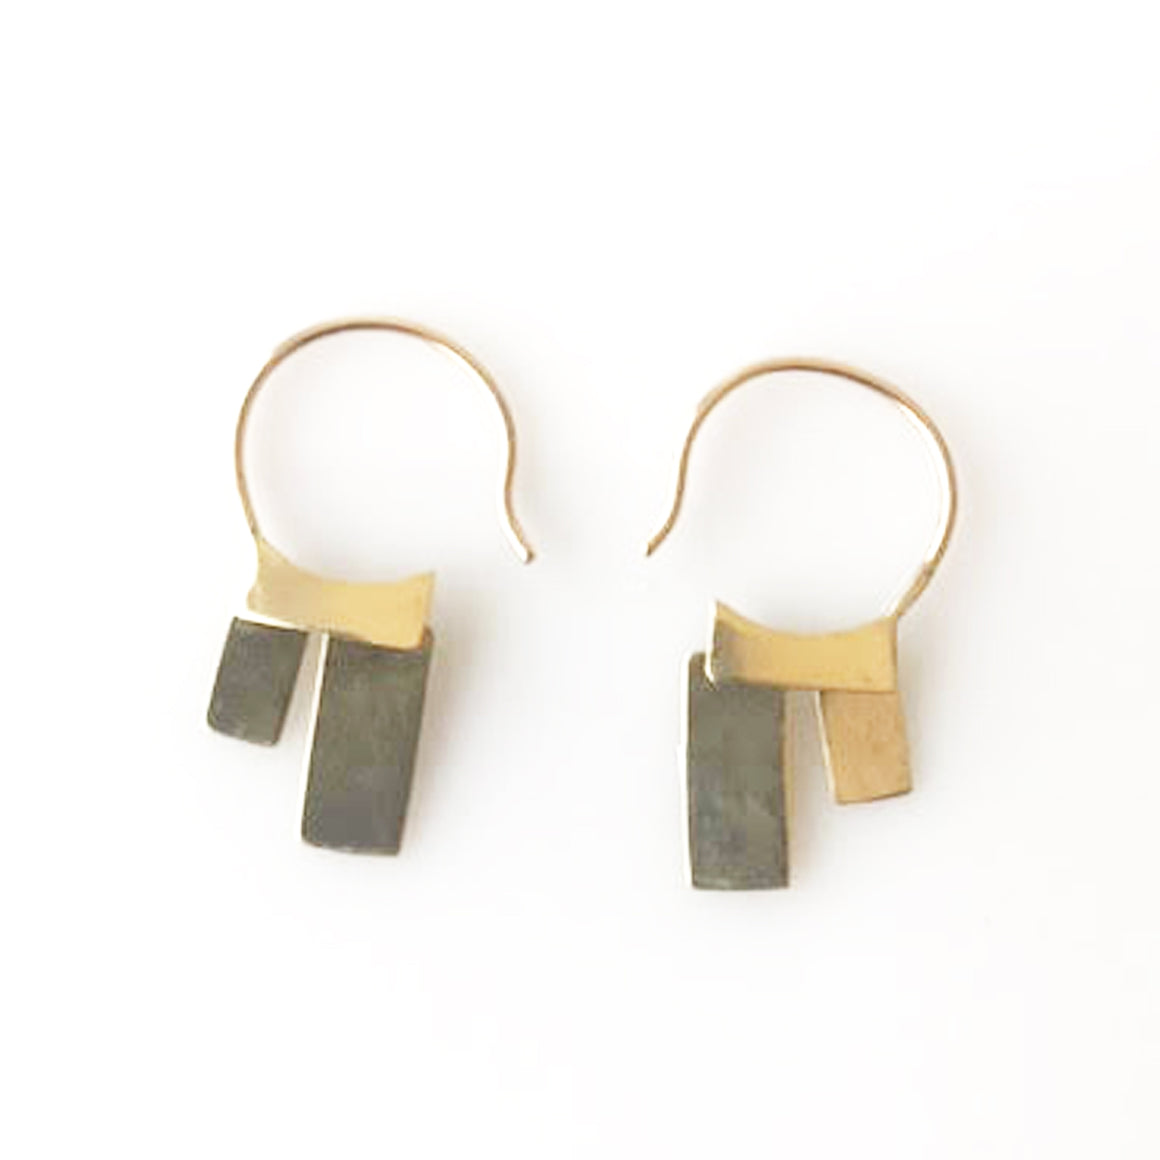 Brass Bambu Hug Earrings - KESTREL